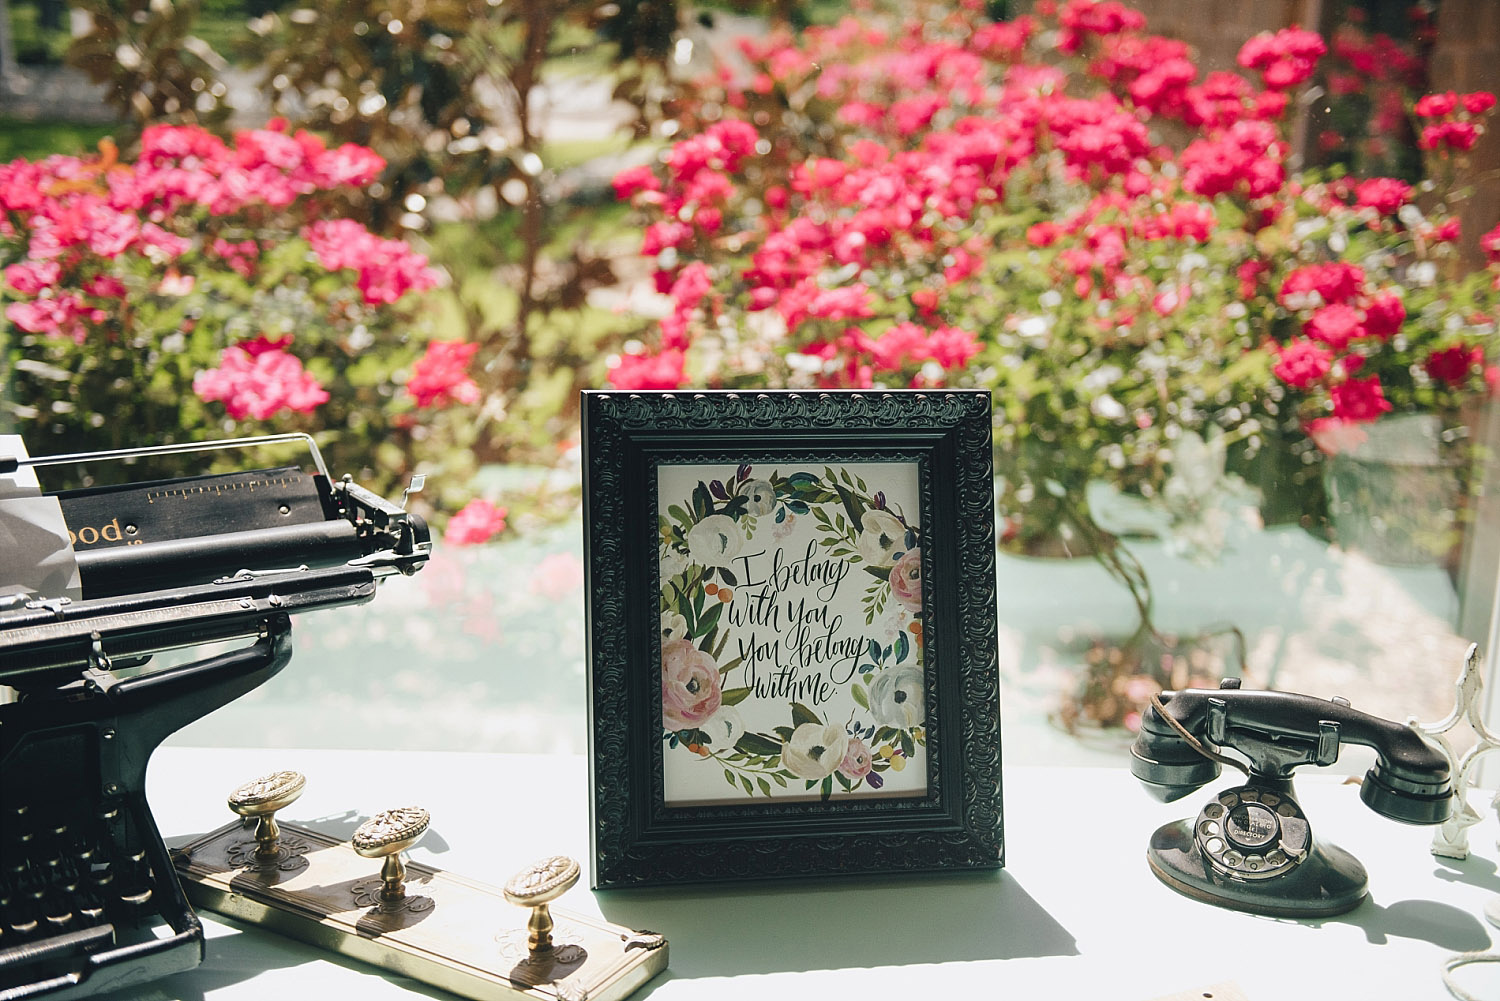 The Orchard Azle wedding floral welcome sign next to typewriter